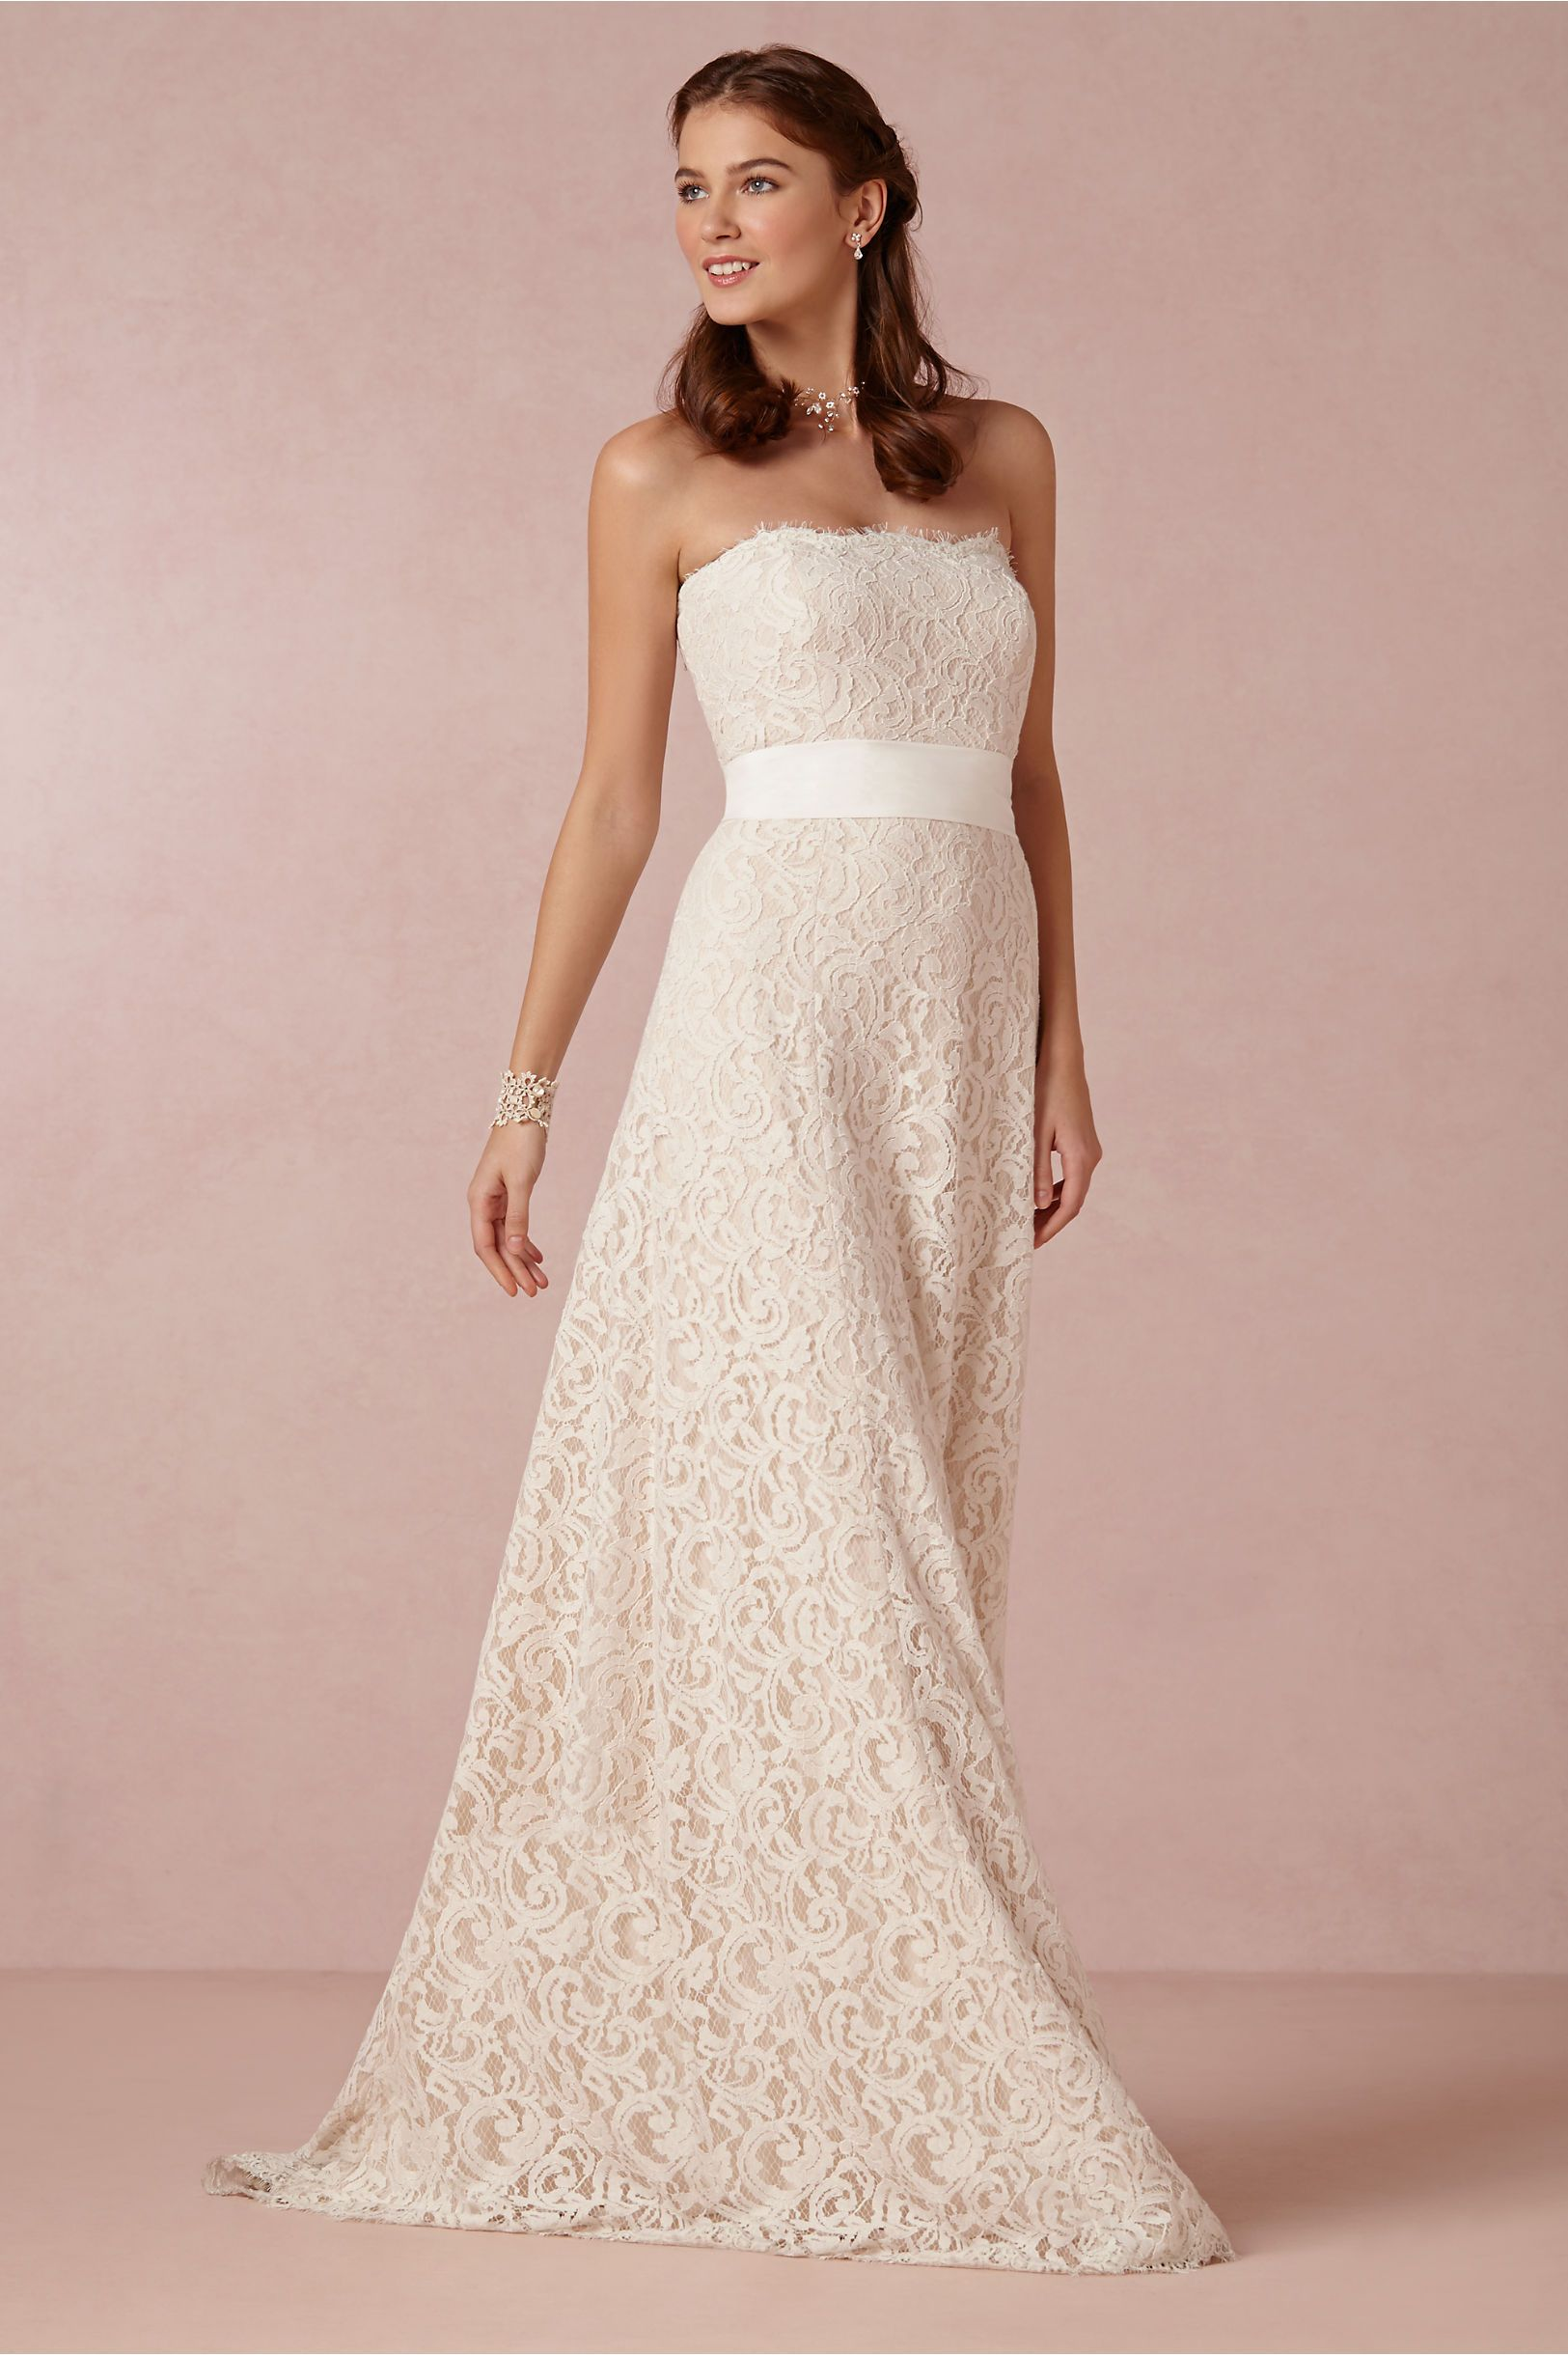 Amada Gown in Sale at BHLDN $400 | Wedding Dresses | Pinterest ...